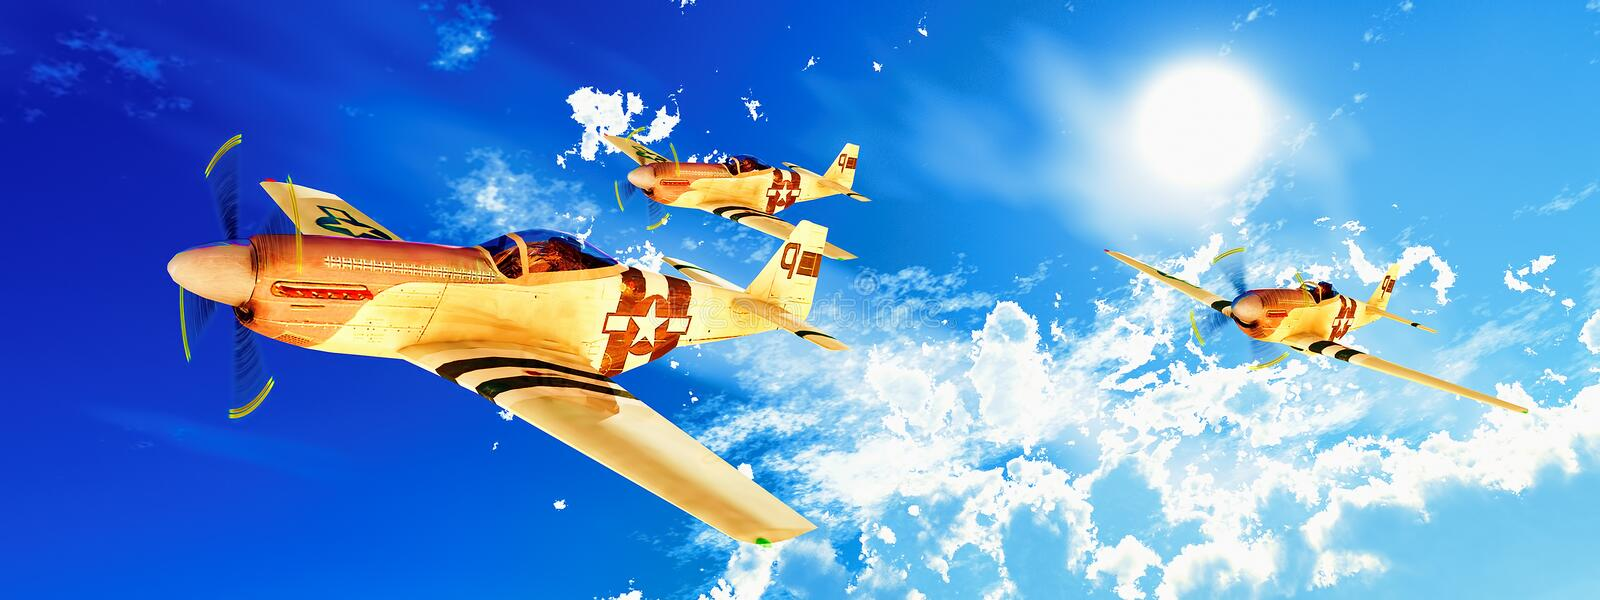 Vintage airplanes on mission vector illustration